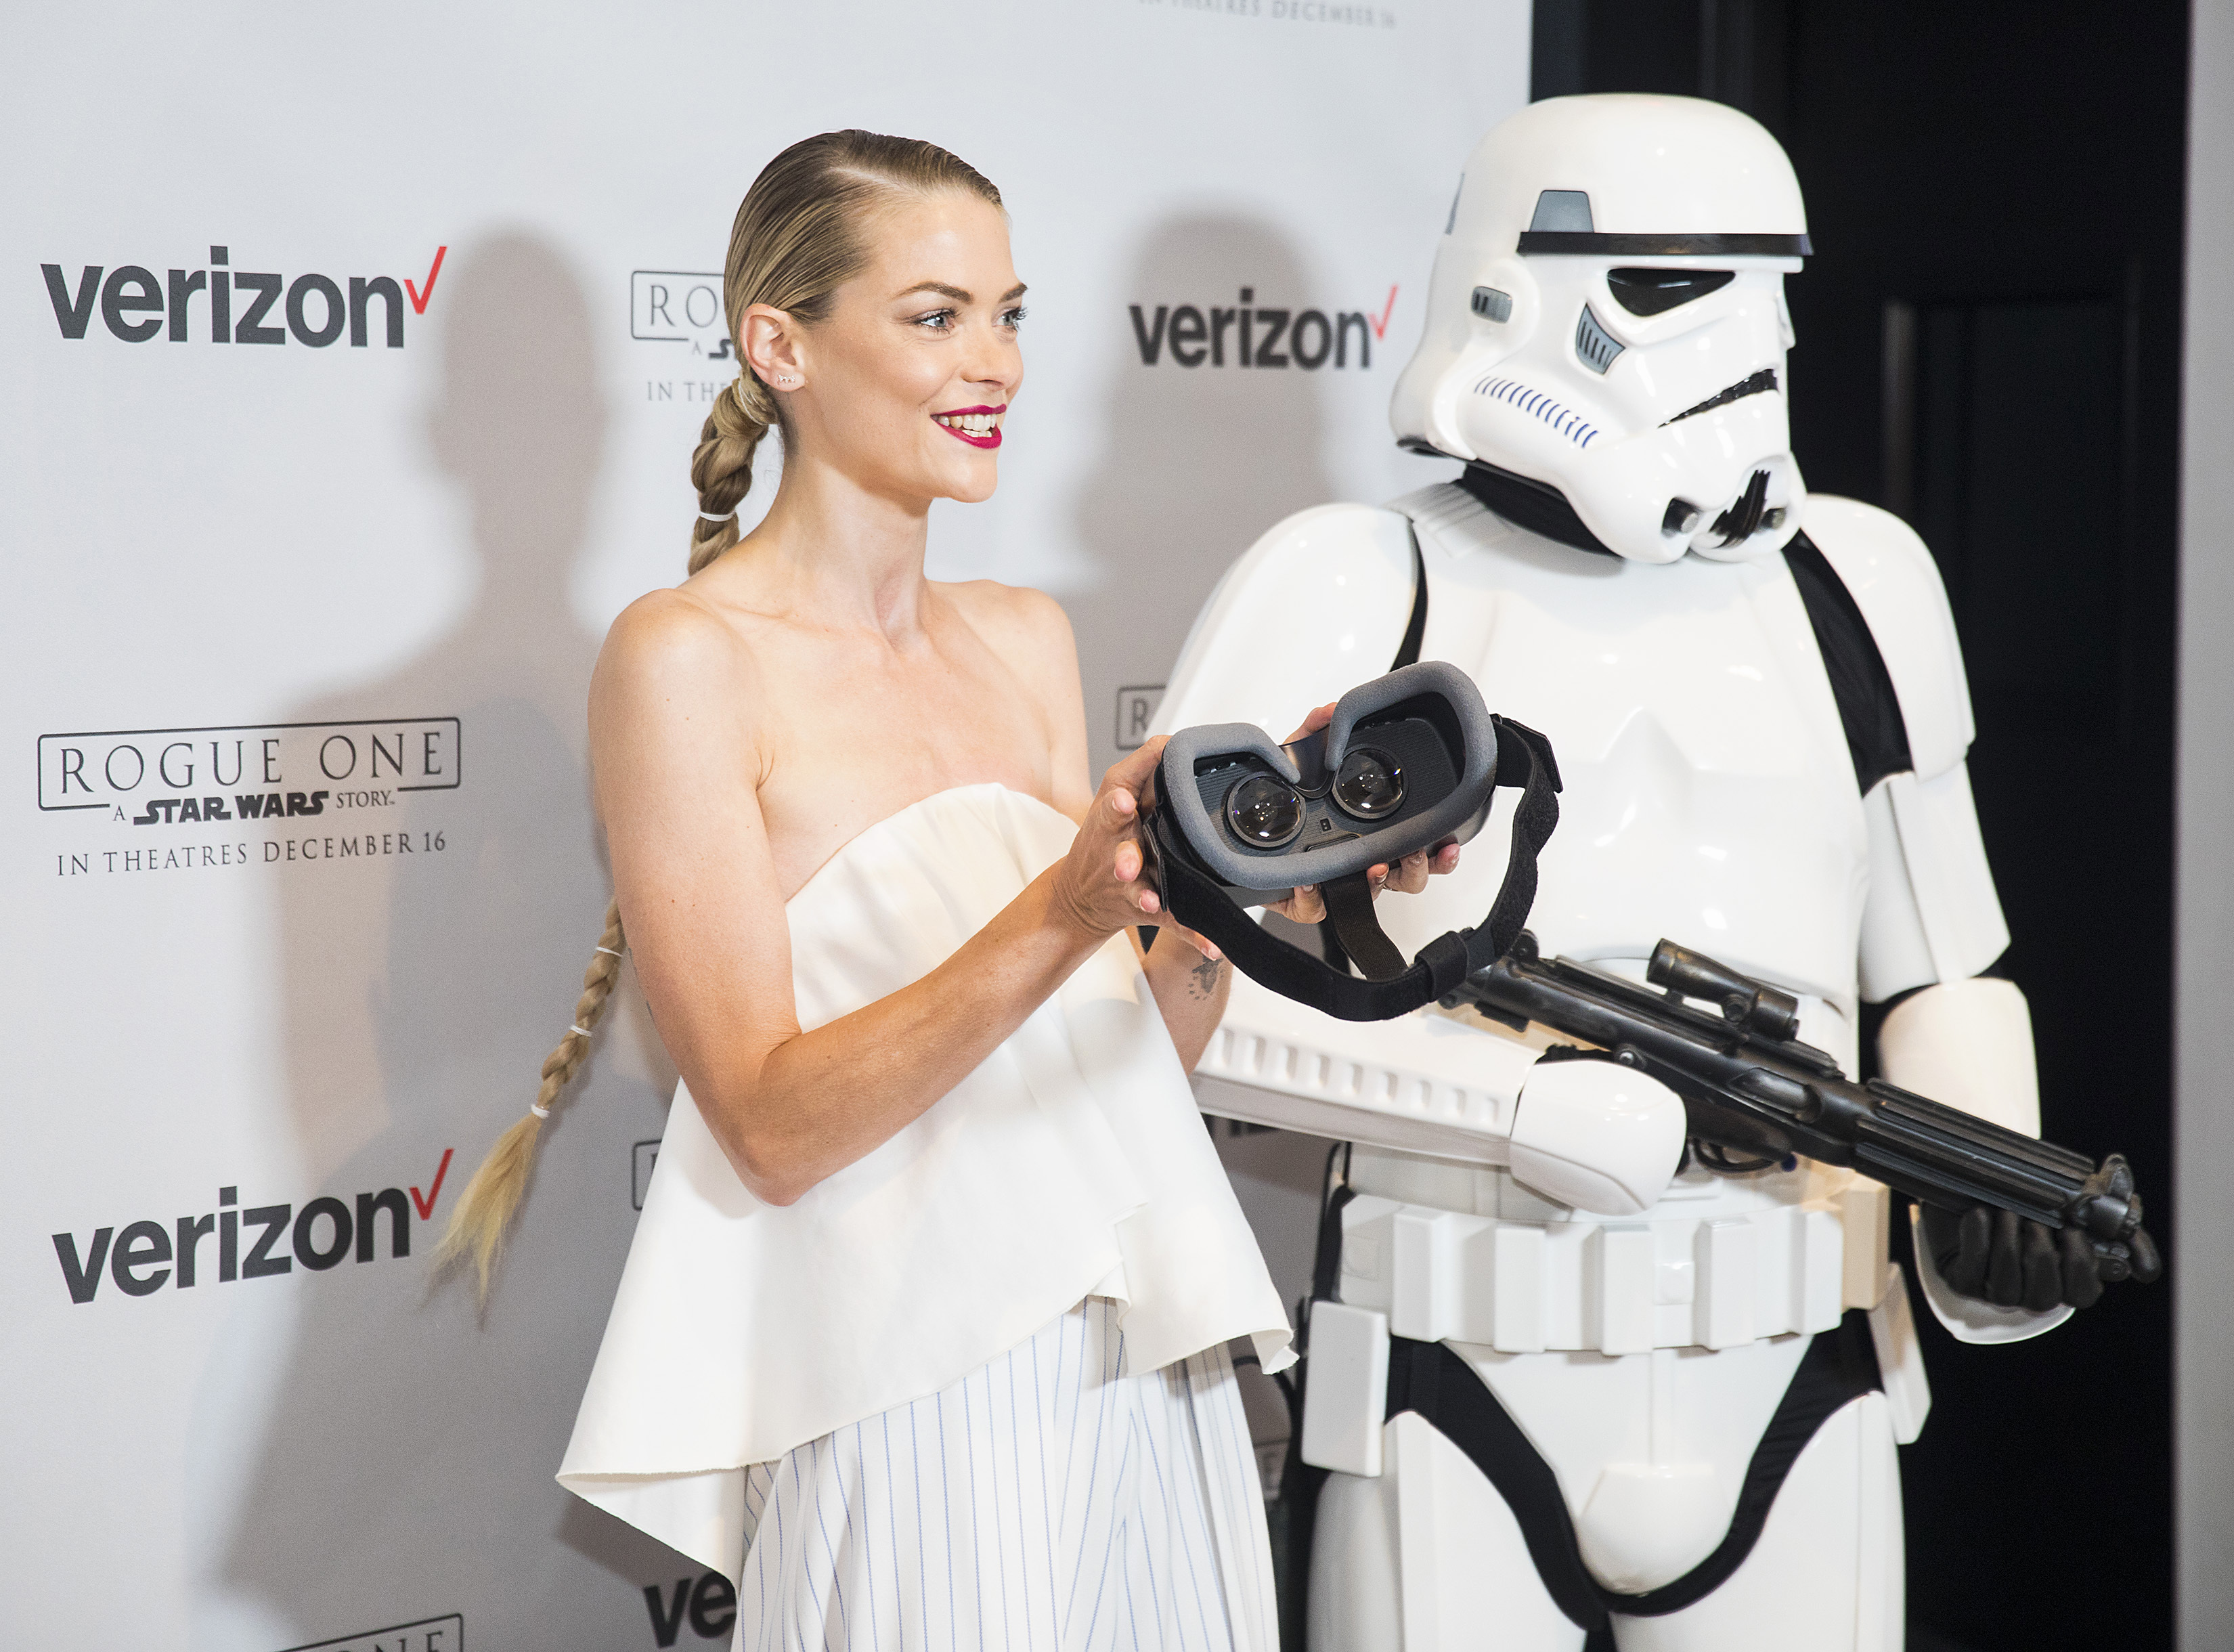 Jaime King on the 501st Legion, an elite group of Stormtrooper cosplayers: